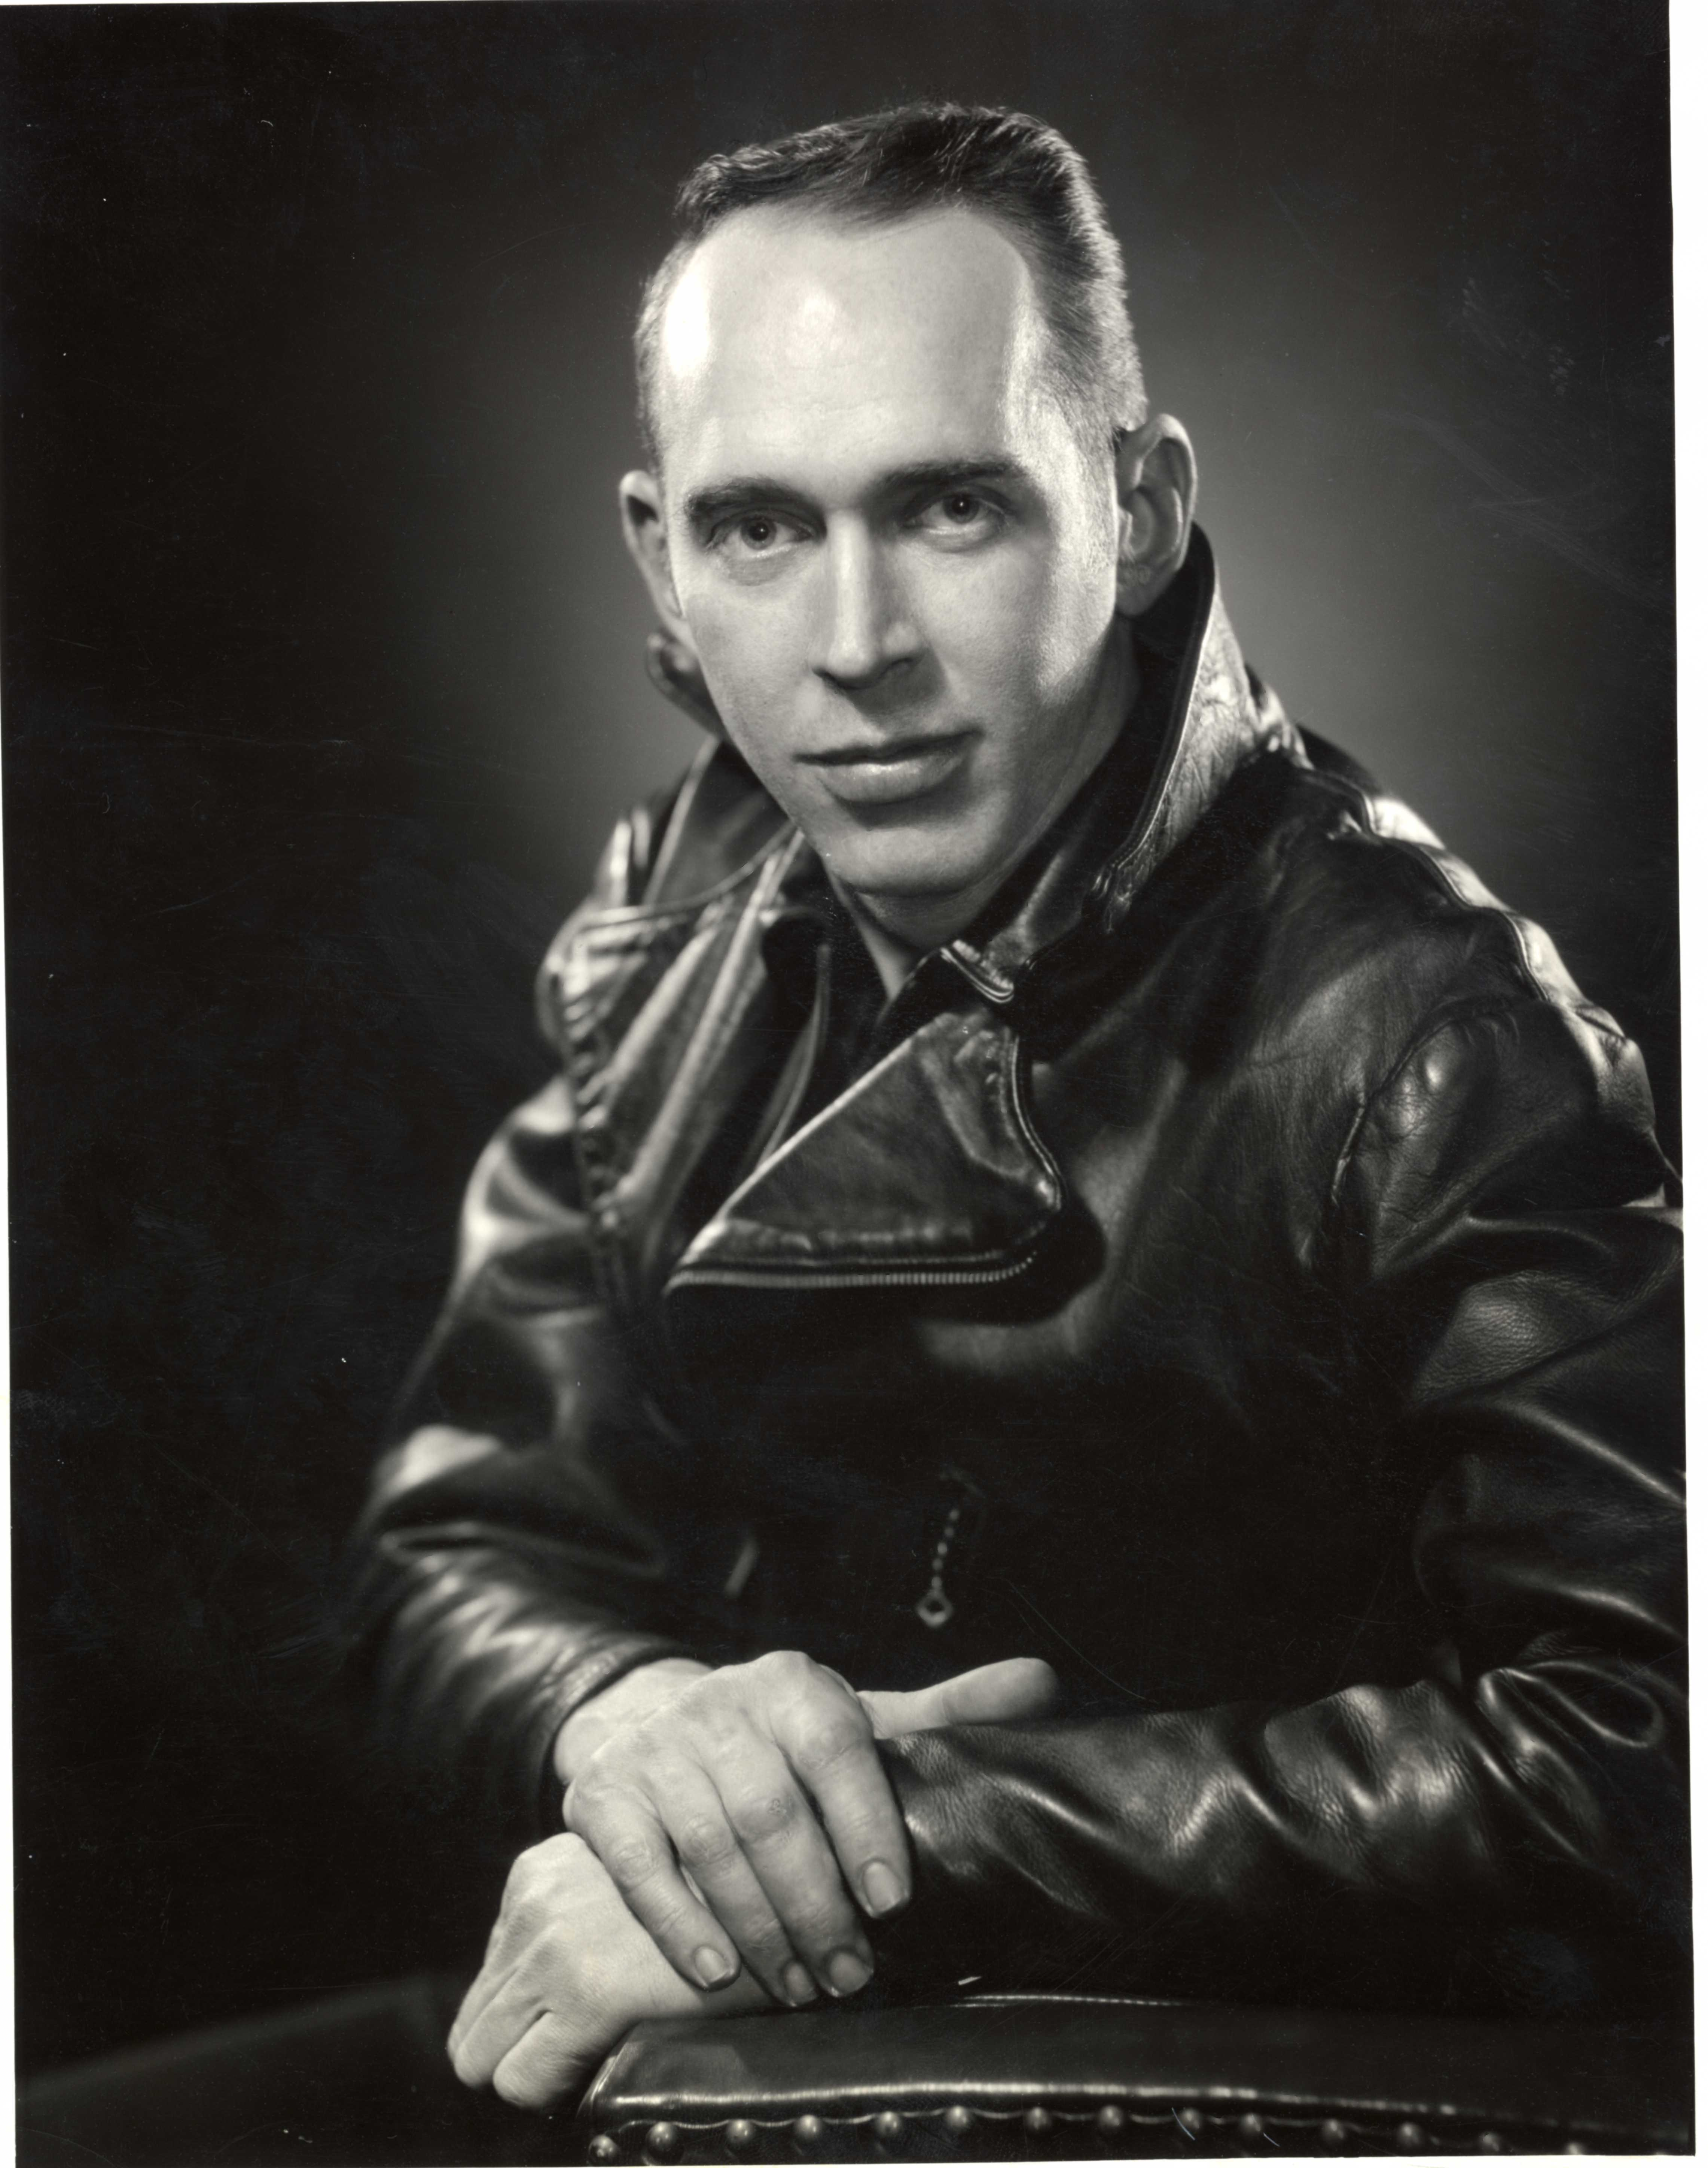 Chuck Renslow (above) founded the Gold Coast bar in the 1950s. It is believed to be the first leather bar in the U.S., according to the Windy City Times. (Photo Courtsey of the Leather Archives & Museum)